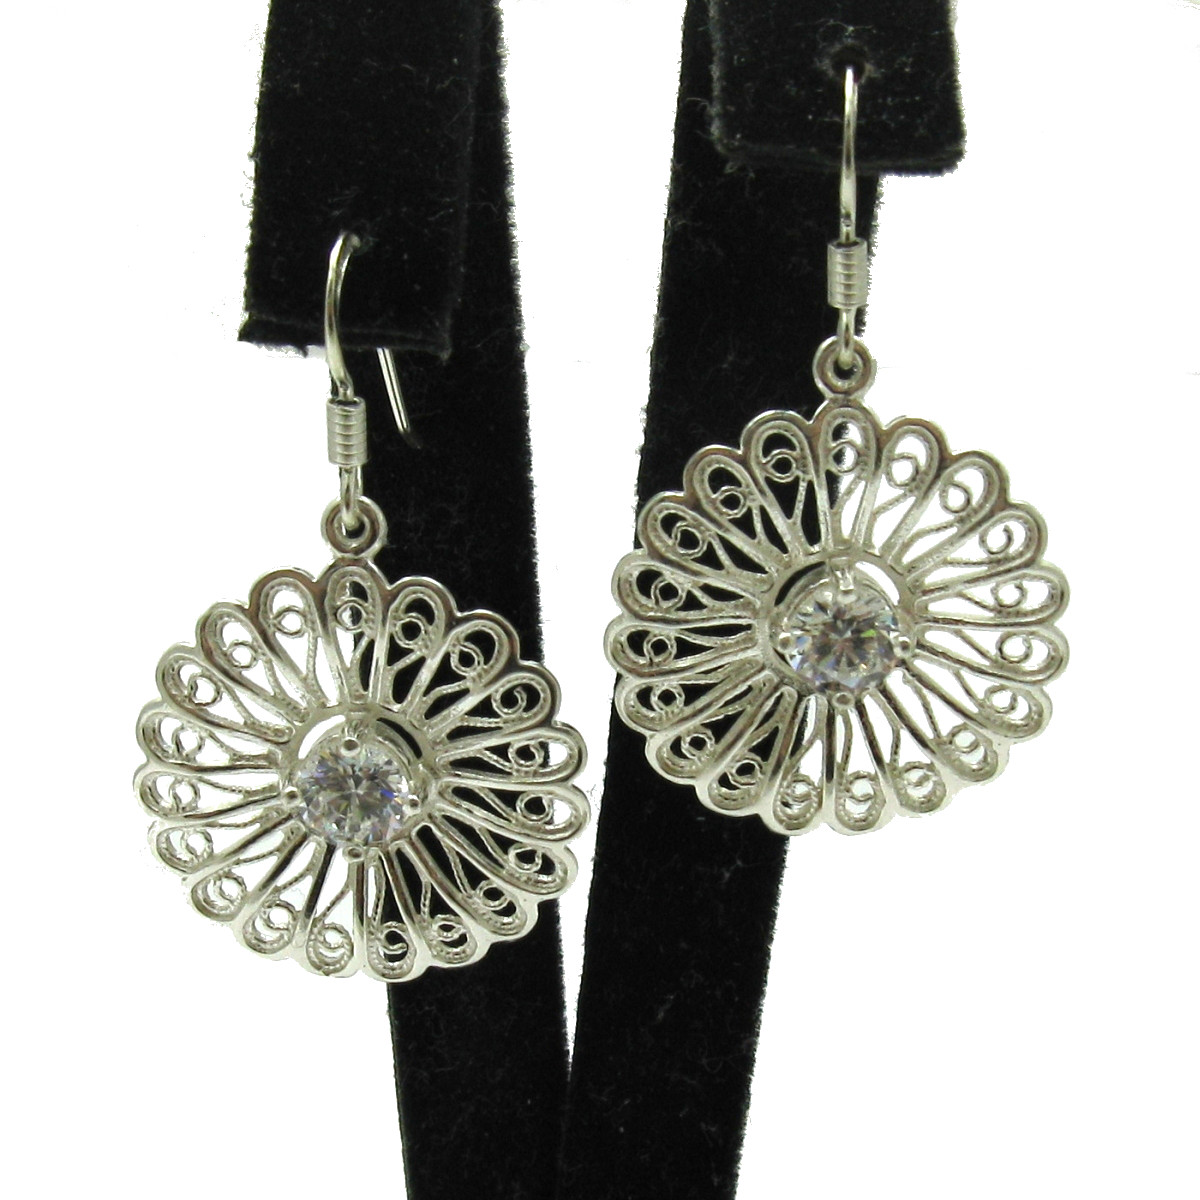 Silver earrings - E000597